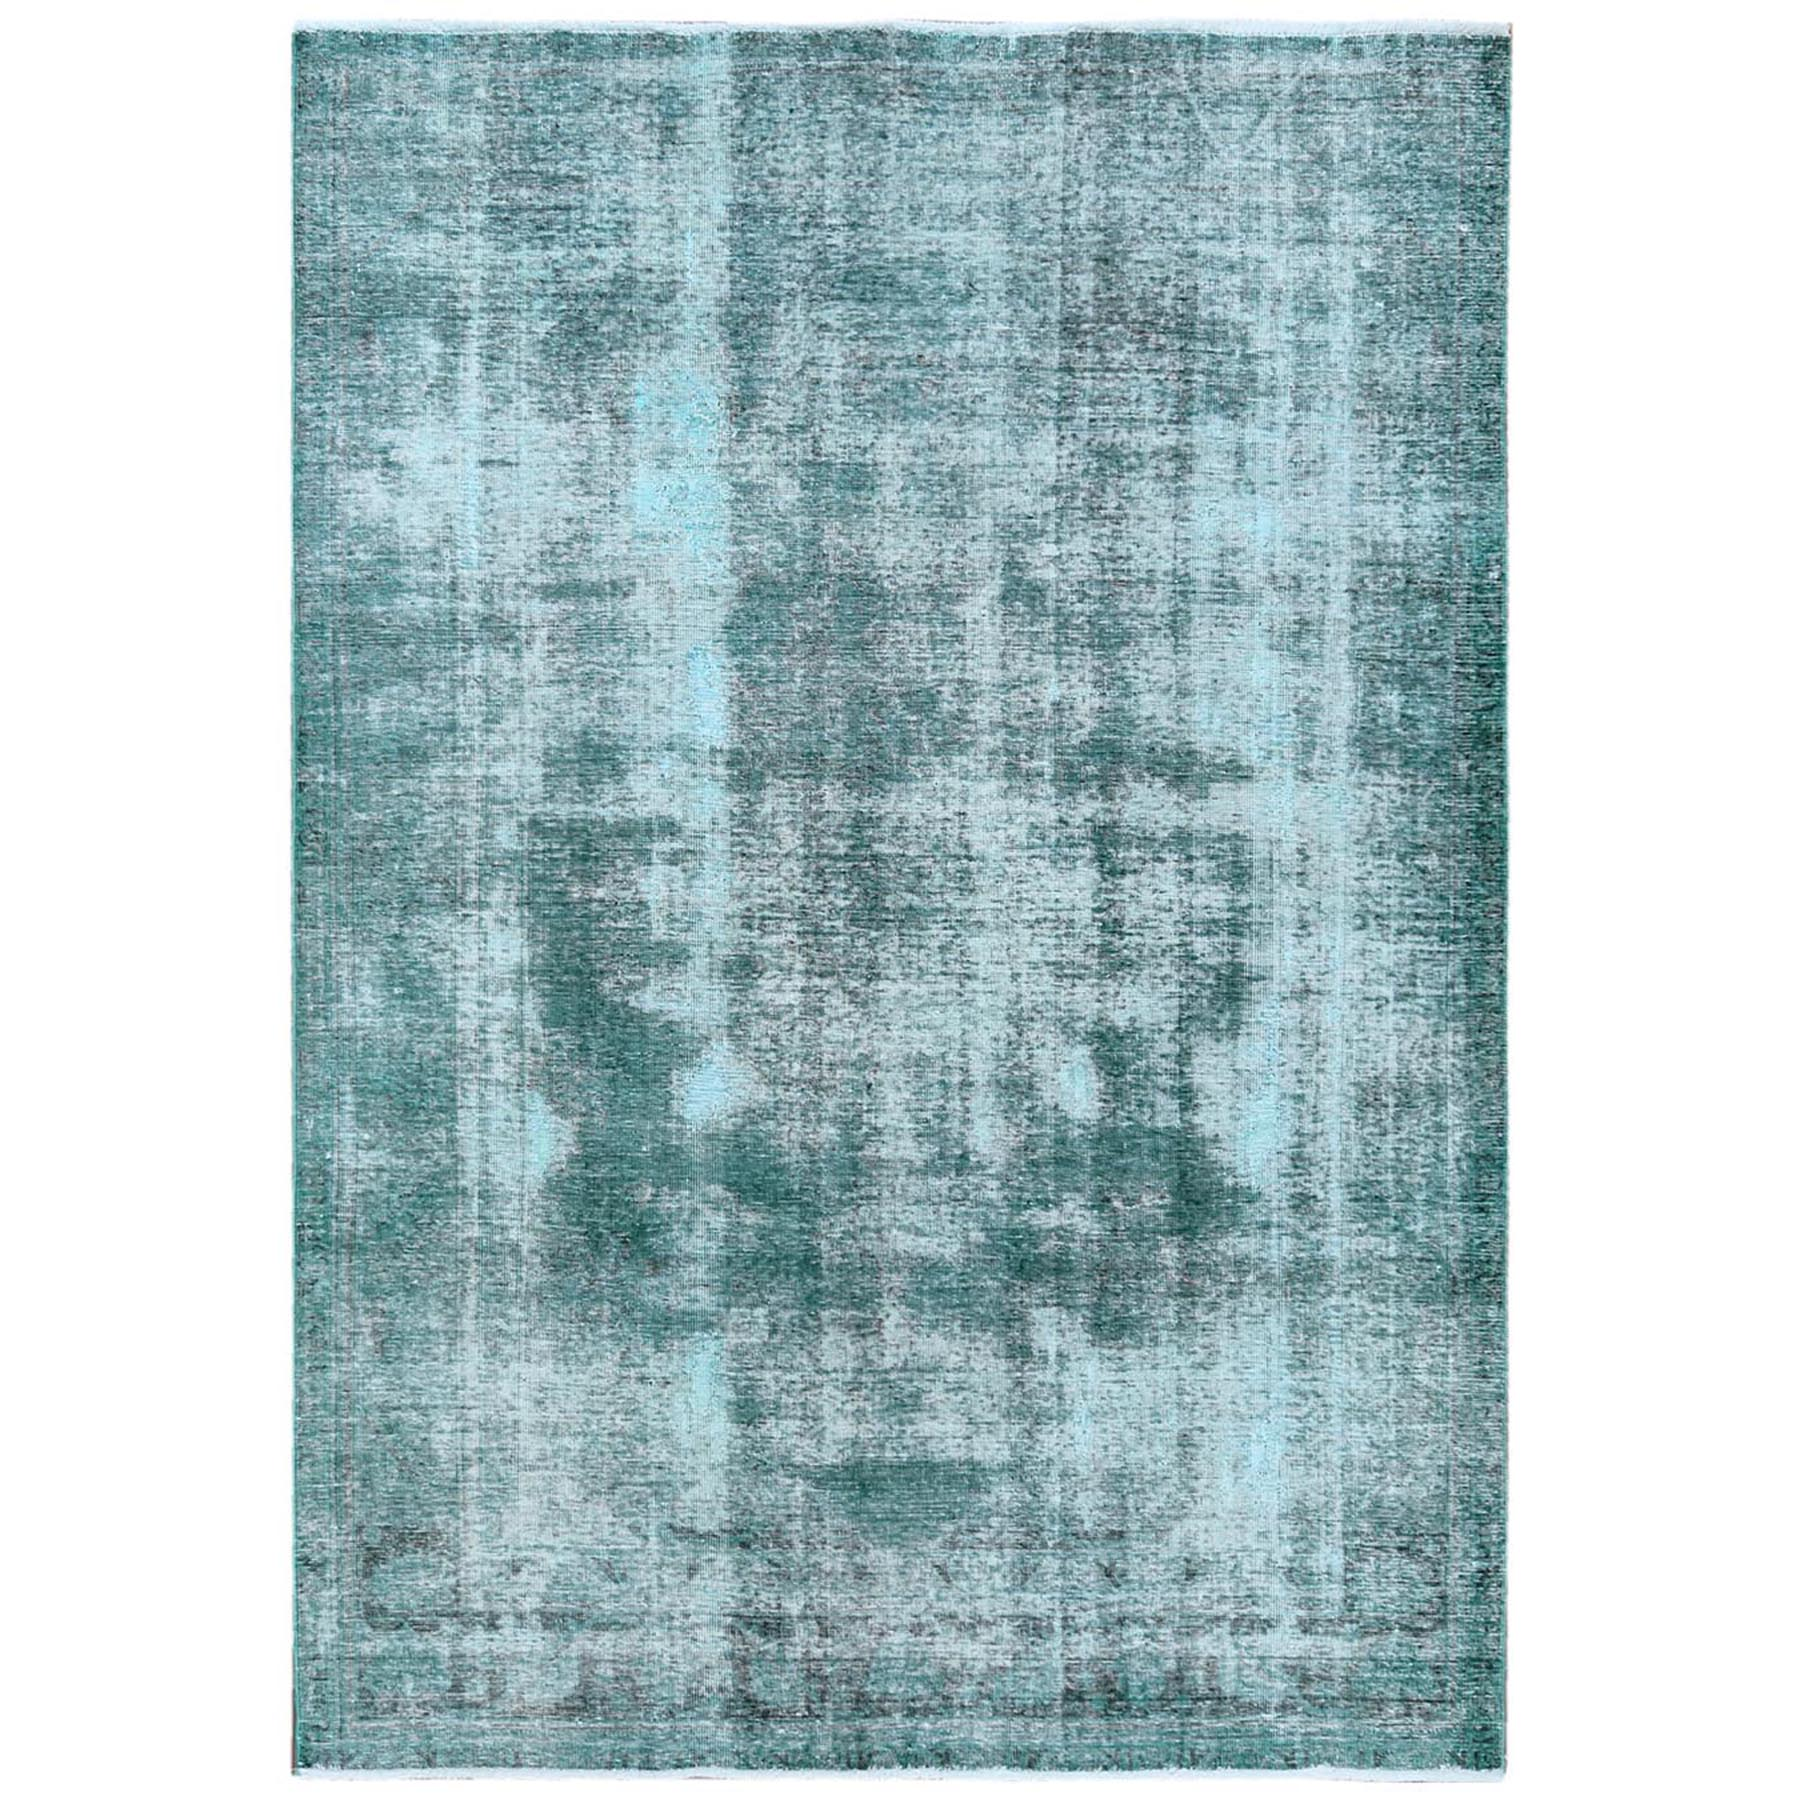 Fetneh Collection And Vintage Overdyed Collection Hand Knotted Green Rug No: 1121812